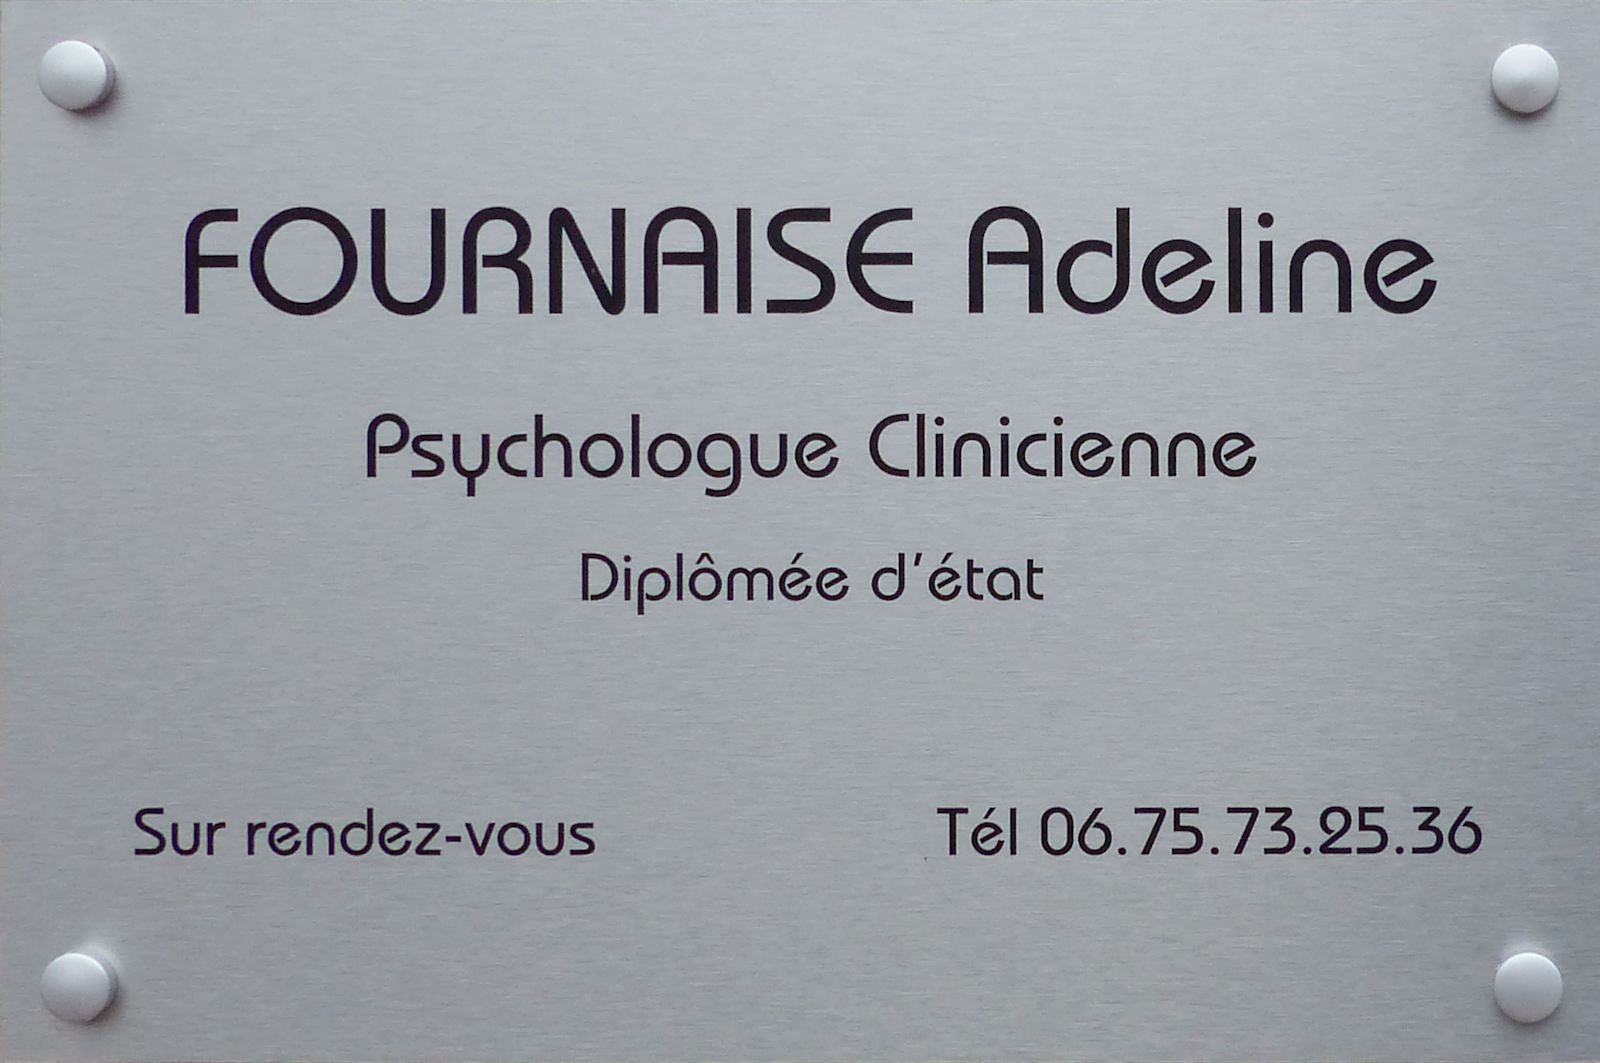 Psychologue clinicienne Tourcoing - Adeline Fournaise.